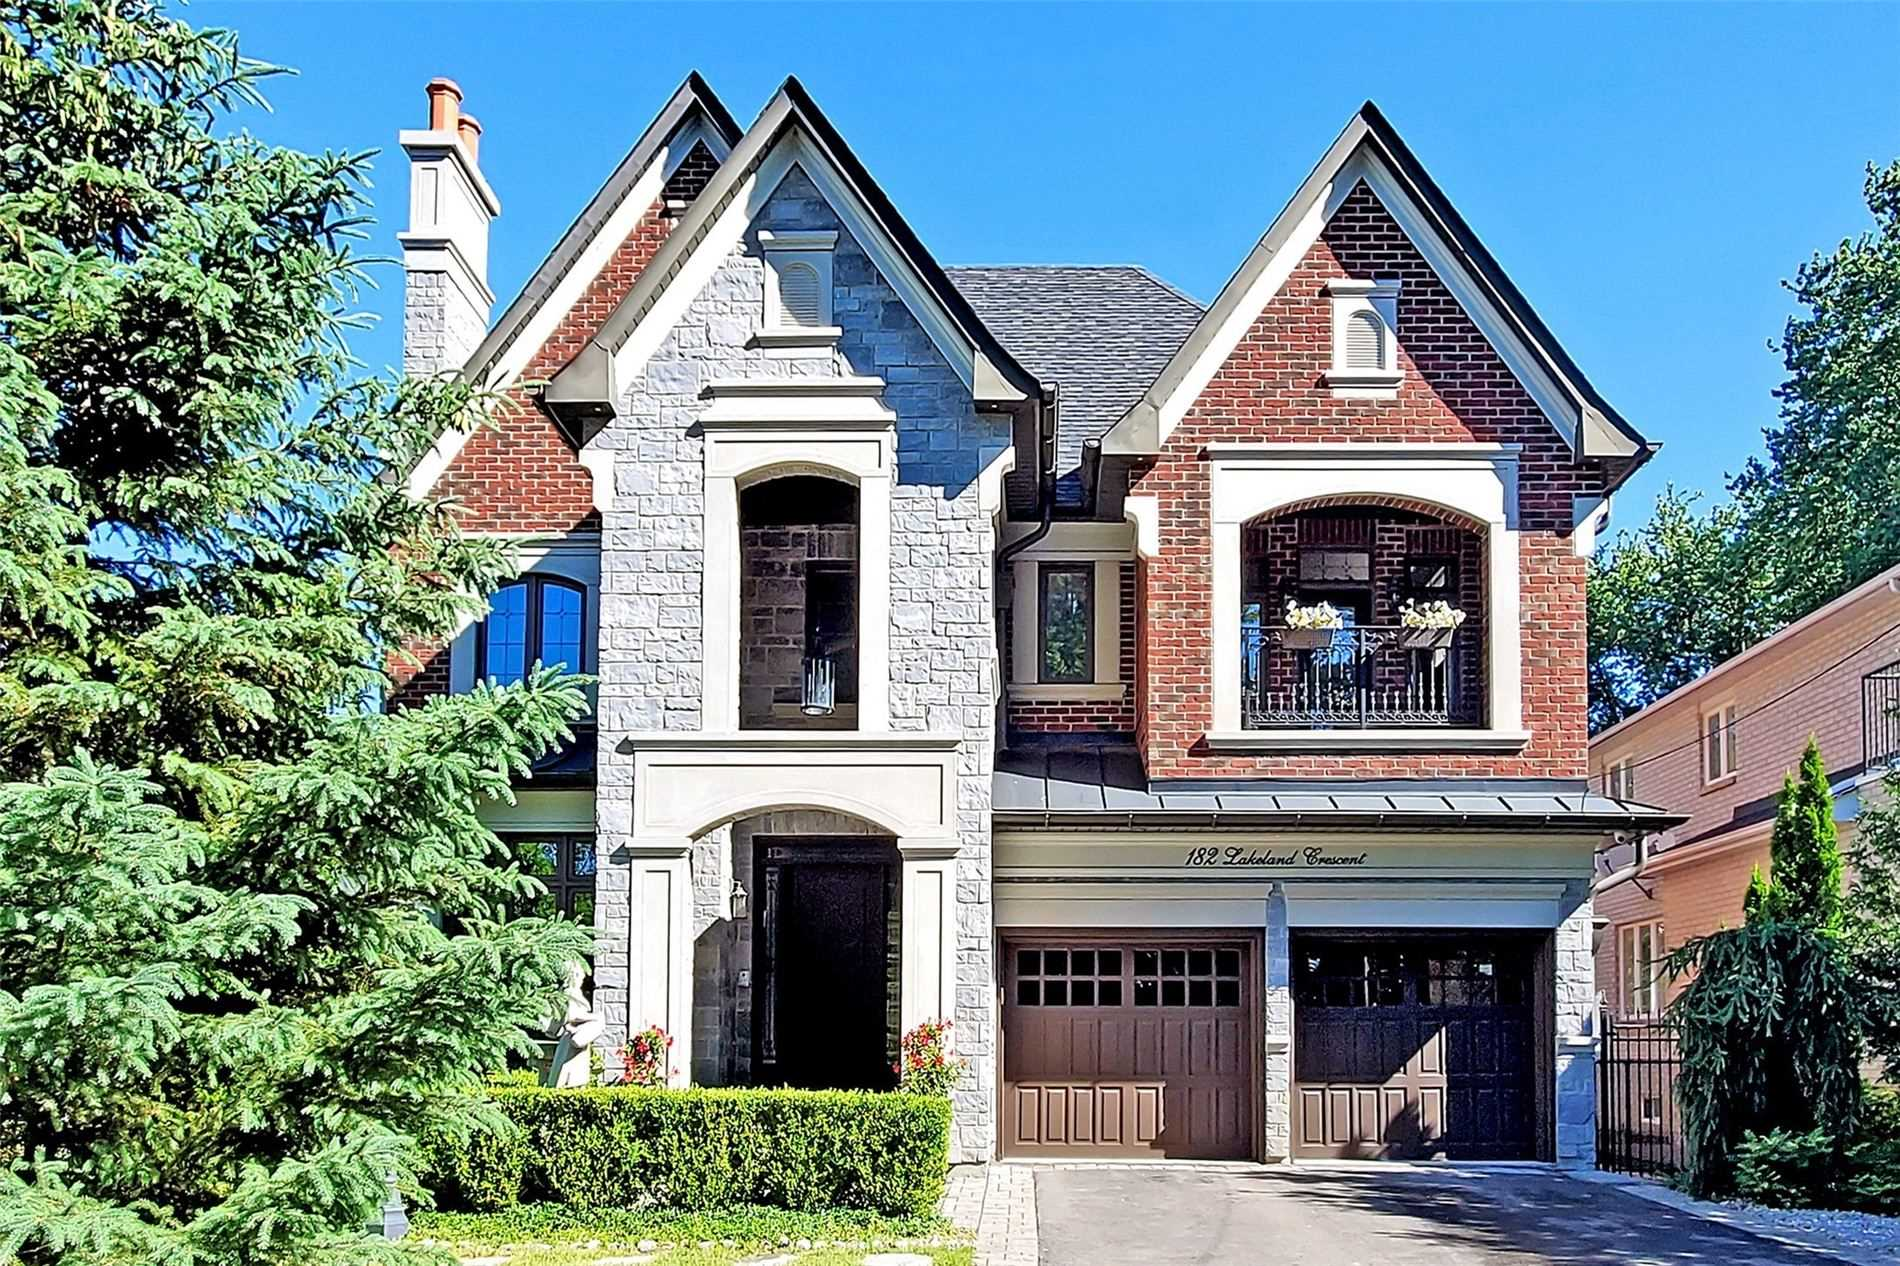 Detached house For Lease In Richmond Hill - 182 Lakeland Cres, Richmond Hill, Ontario, Canada L4E3A3 , 4 Bedrooms Bedrooms, ,5 BathroomsBathrooms,Detached,For Lease,Lakeland